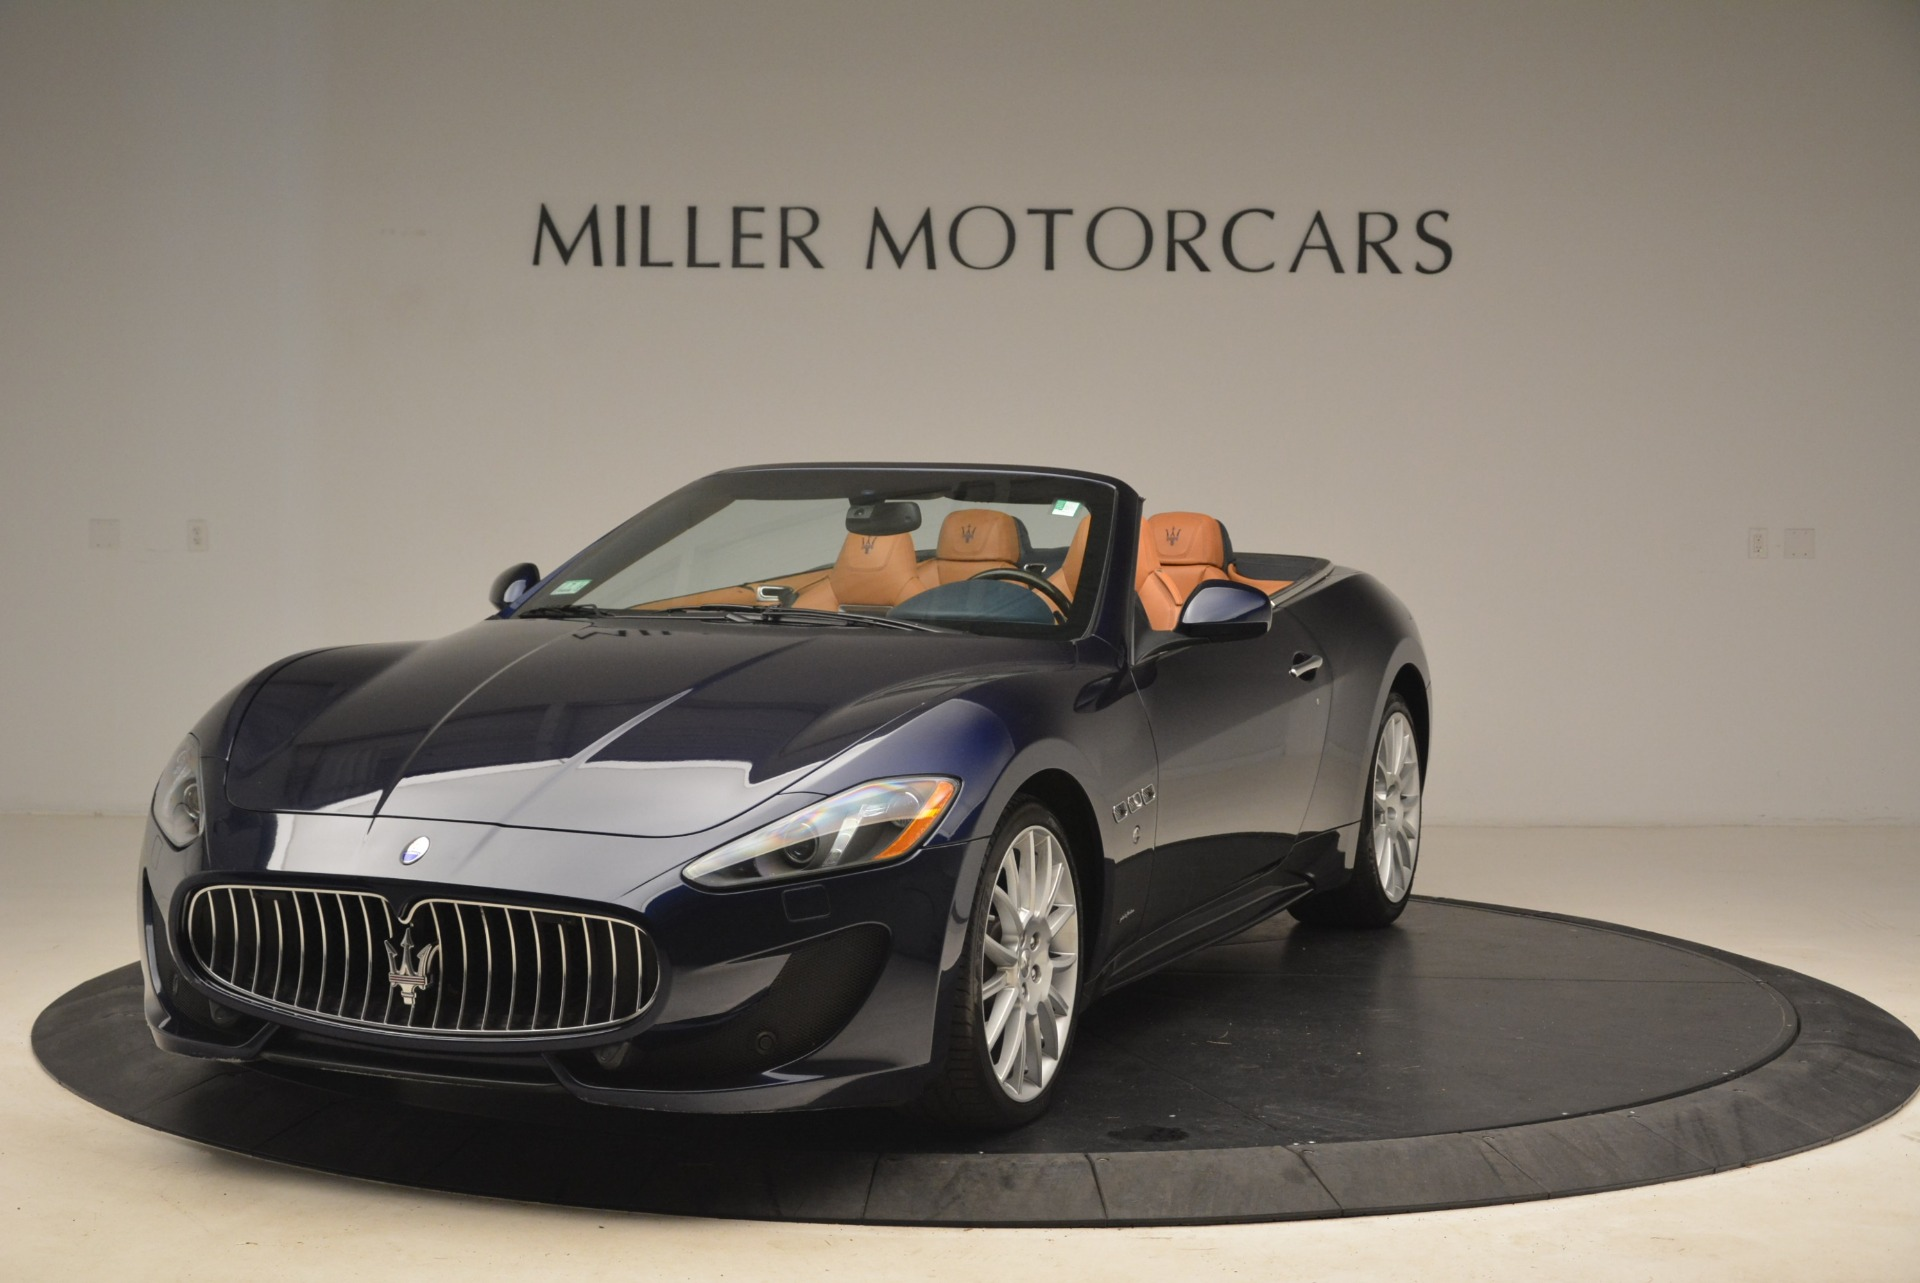 Used 2014 Maserati GranTurismo Sport for sale Sold at Bentley Greenwich in Greenwich CT 06830 1